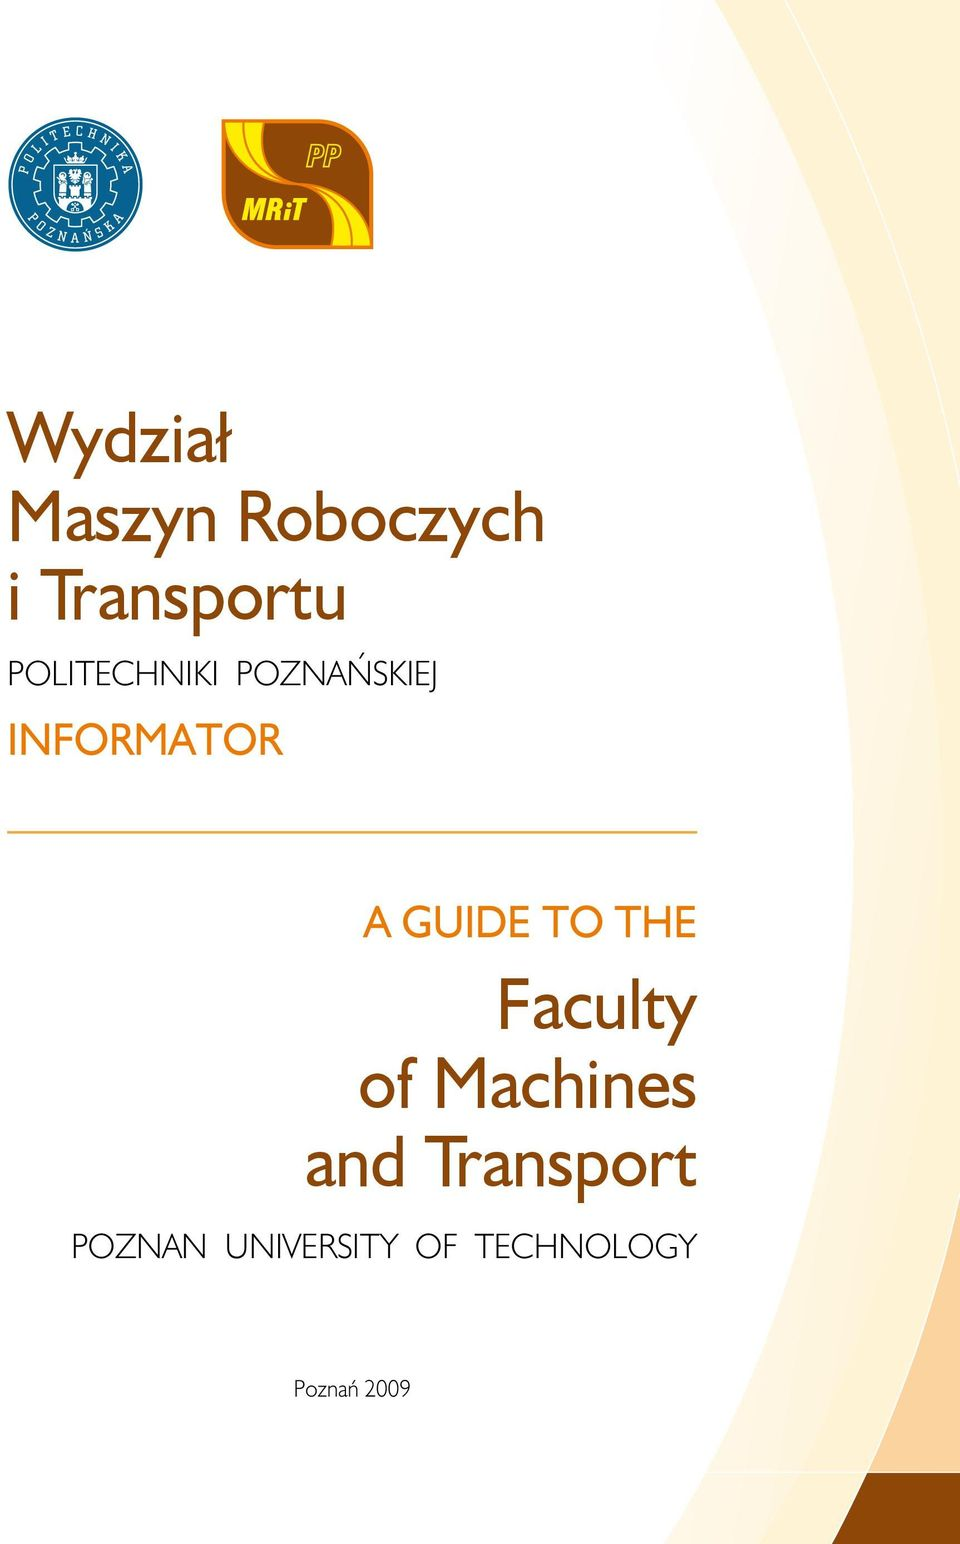 GUIDE TO THE Faculty of Machines and